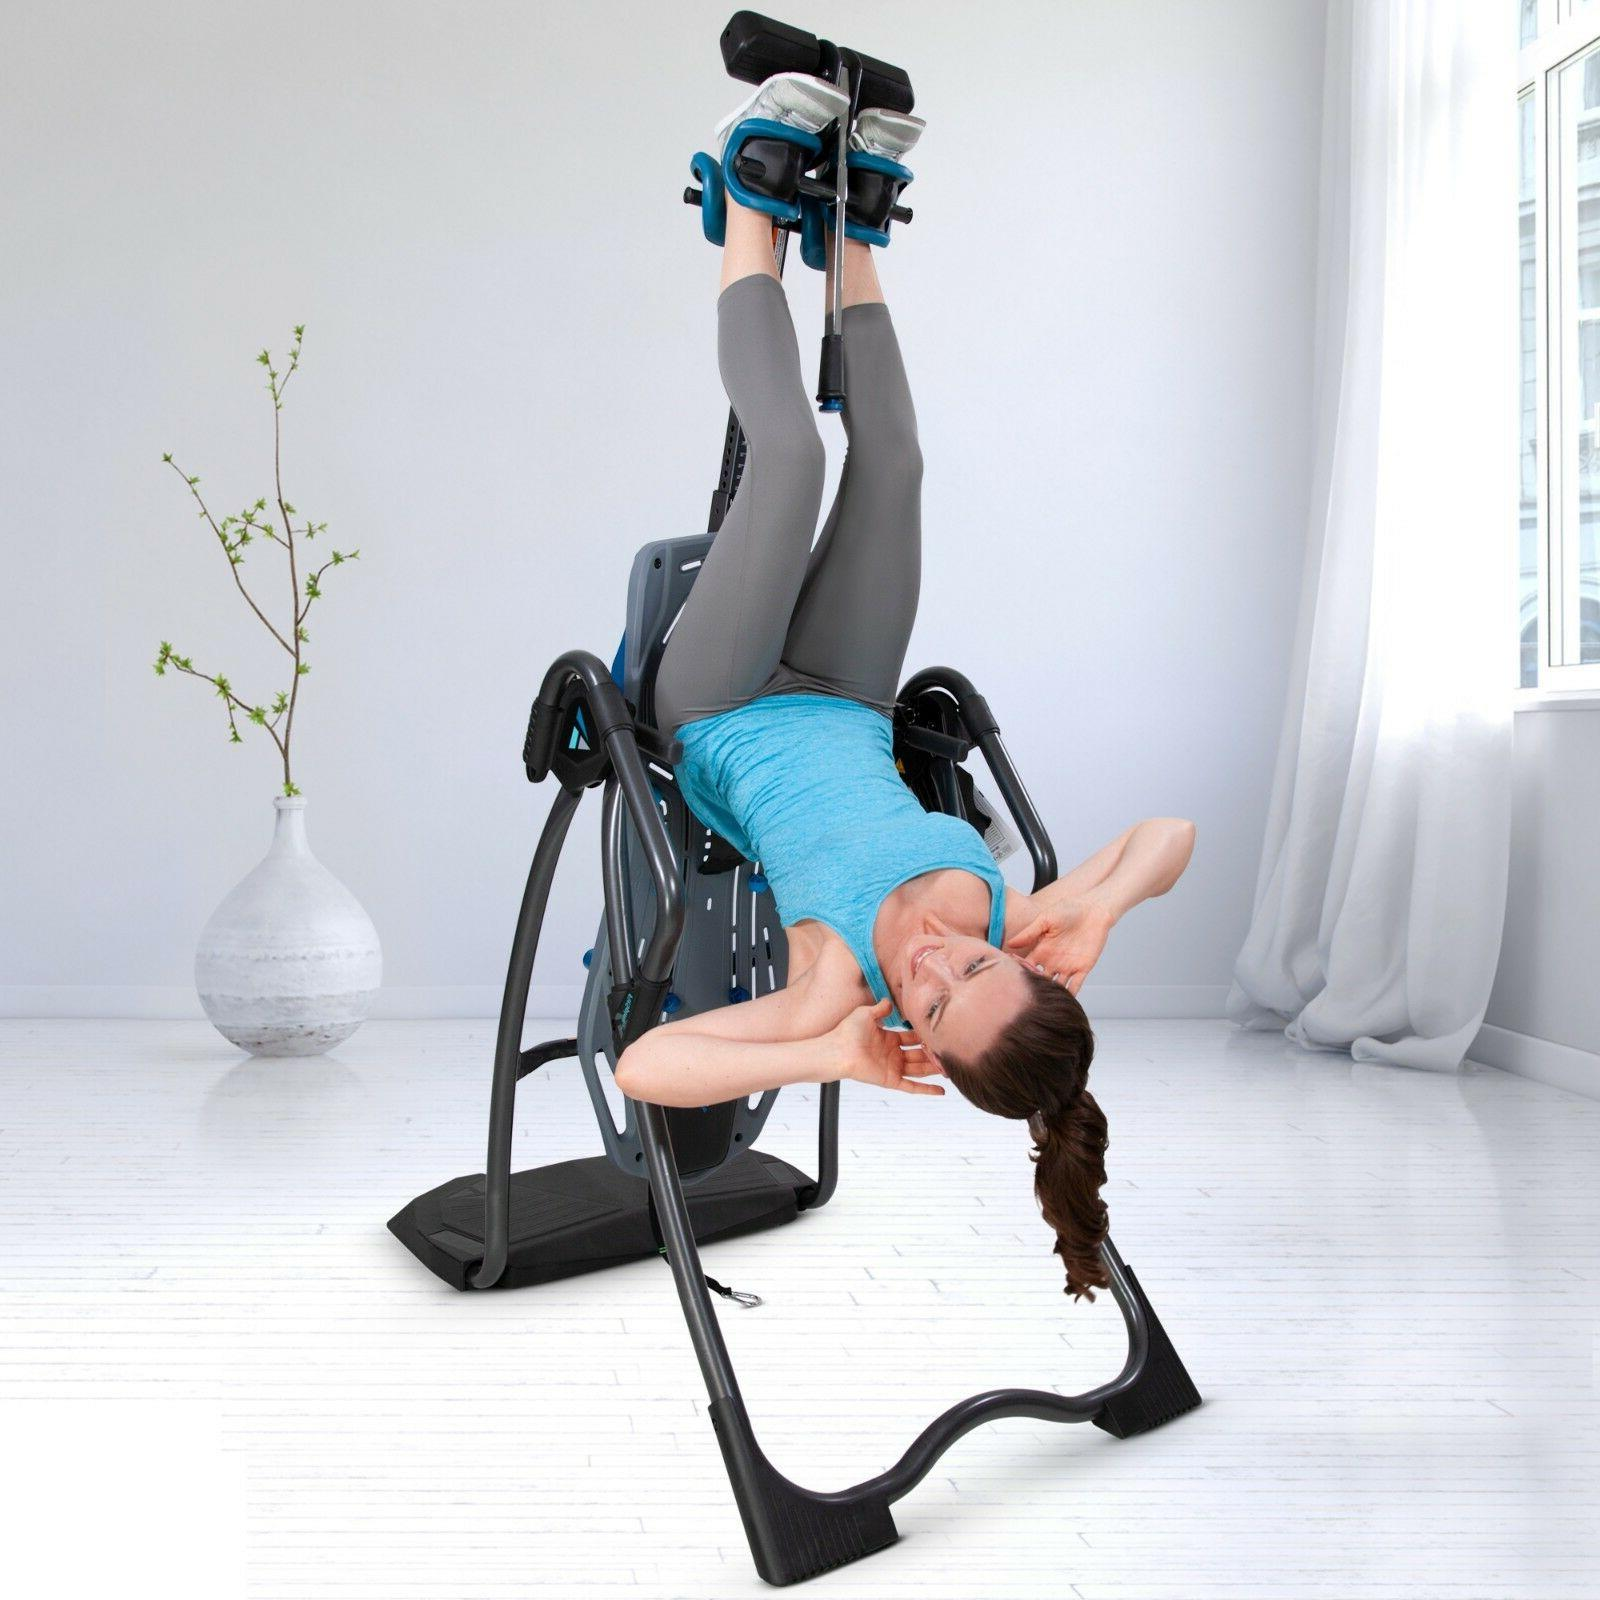 SALE!! FitSpine LX9 - Cert Refurb- INCLUDED: Pain Relief DVD!